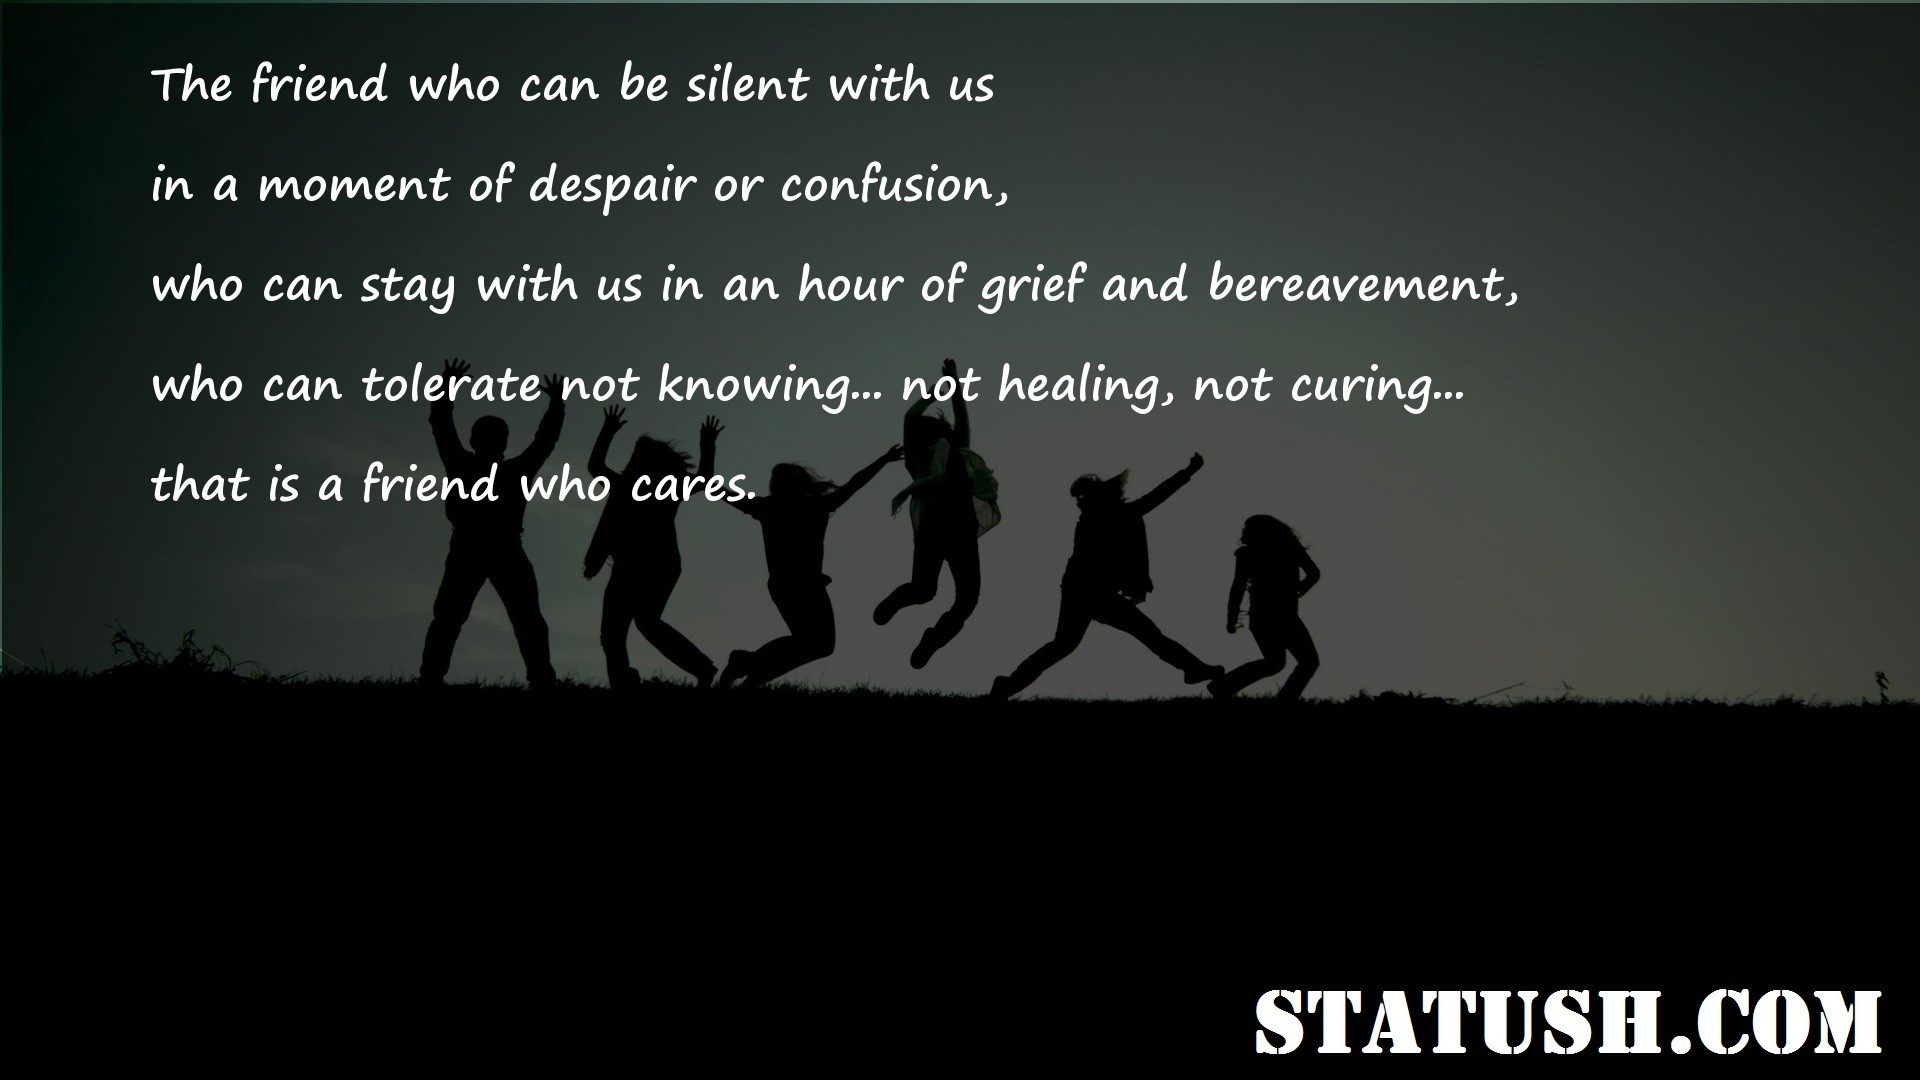 The friend who can be silent with us